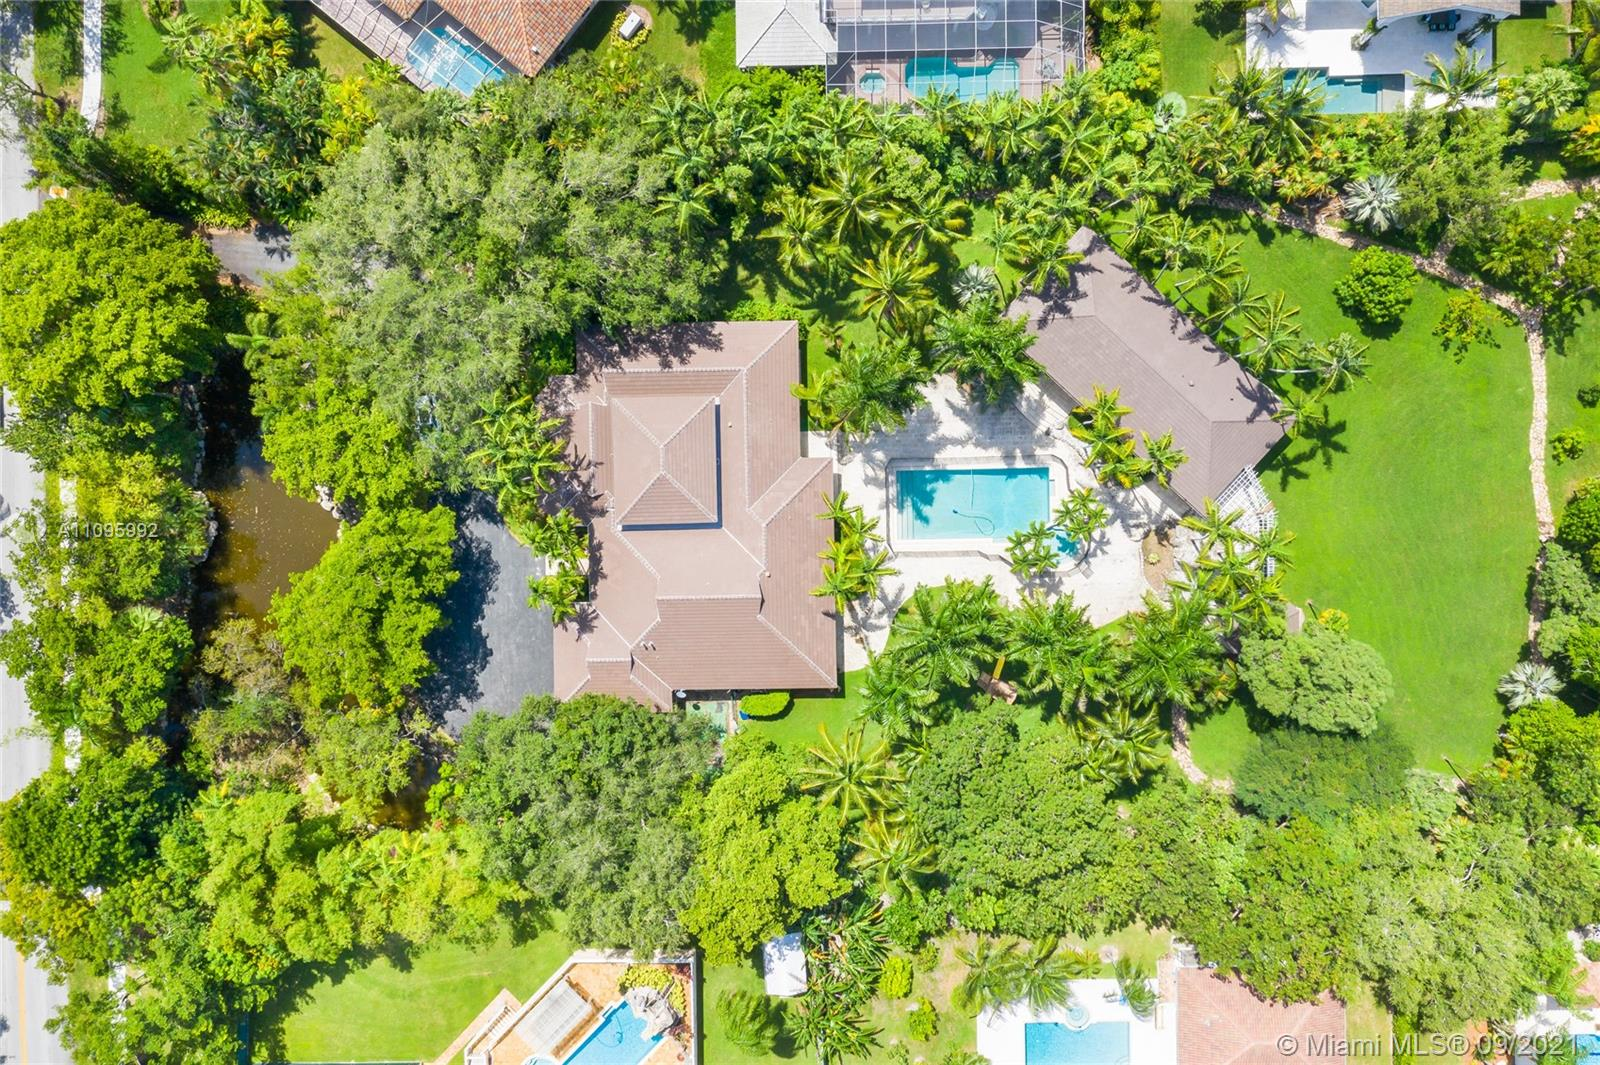 Single Family Home,For Sale,12850 SW 57th Ave, Pinecrest, Florida 33156,Brickell,realty,broker,condos near me